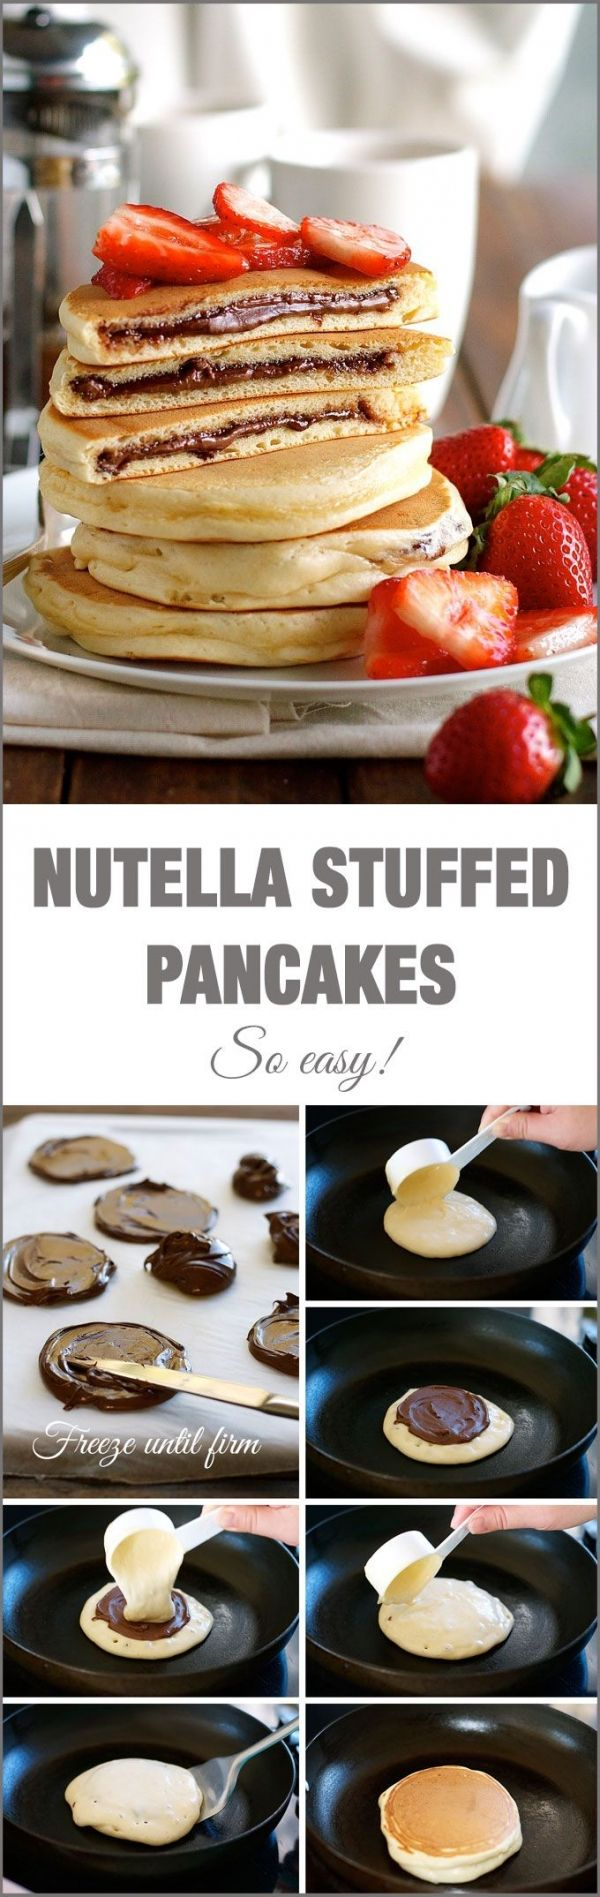 Nutella Stuffed Pancakes | Recipe